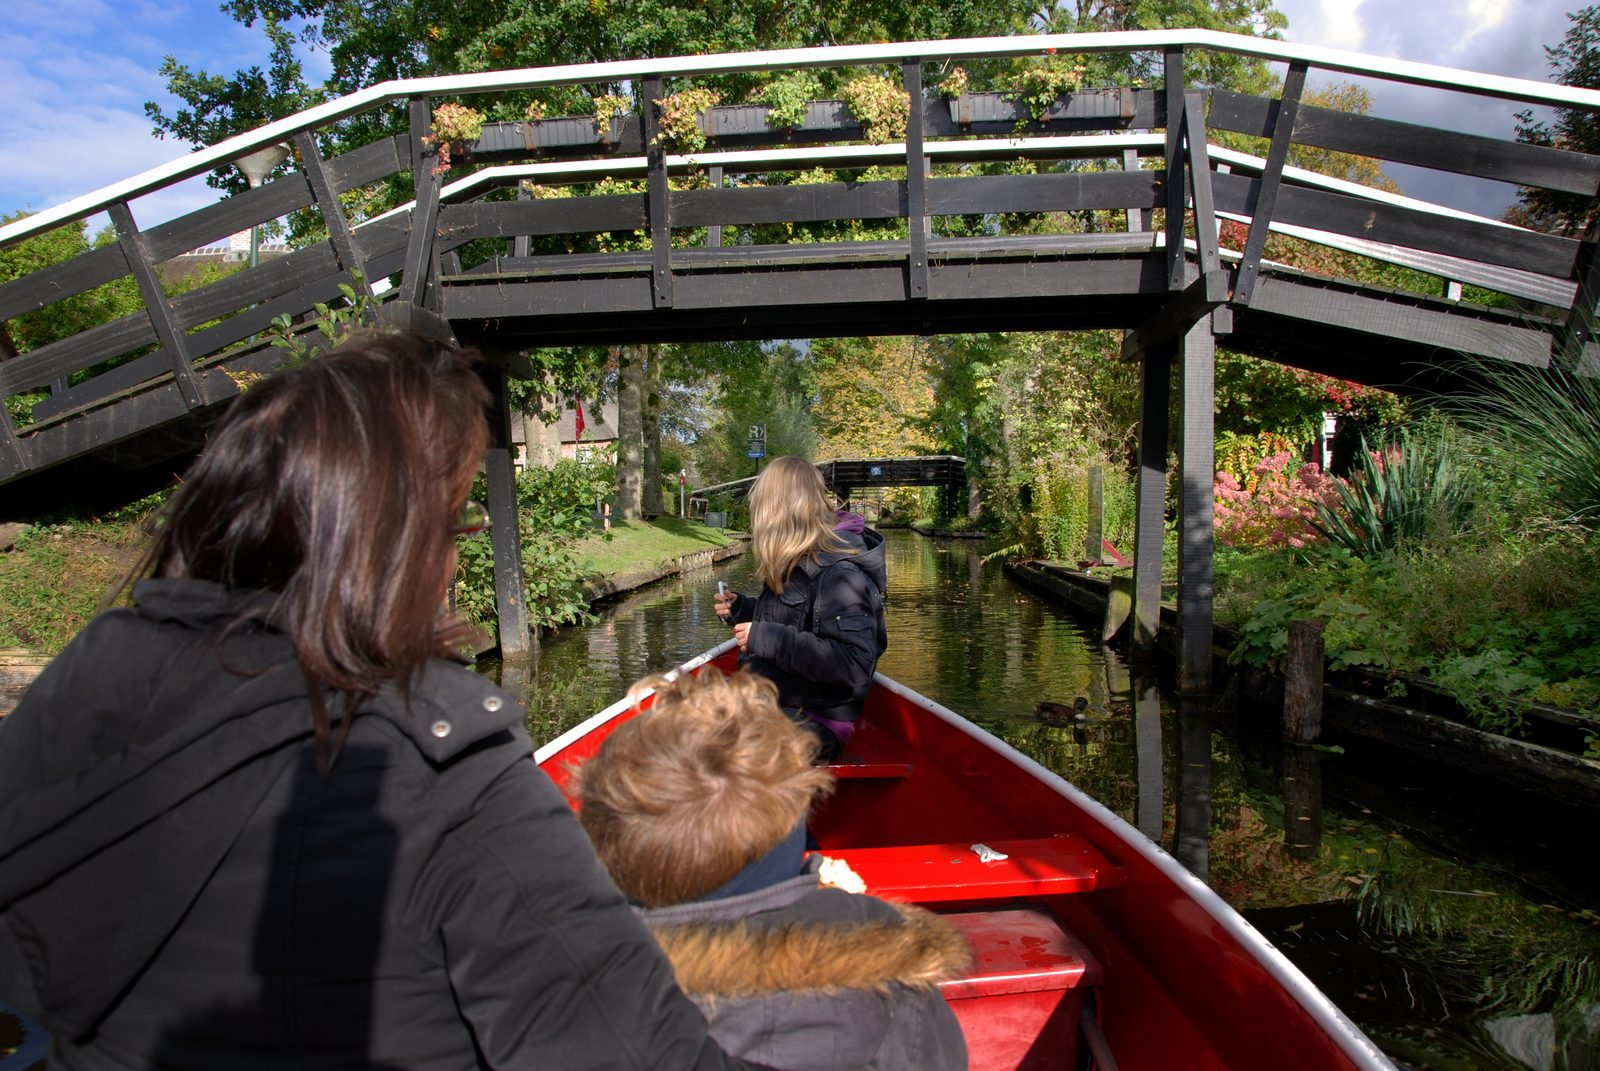 The town of Giethoorn